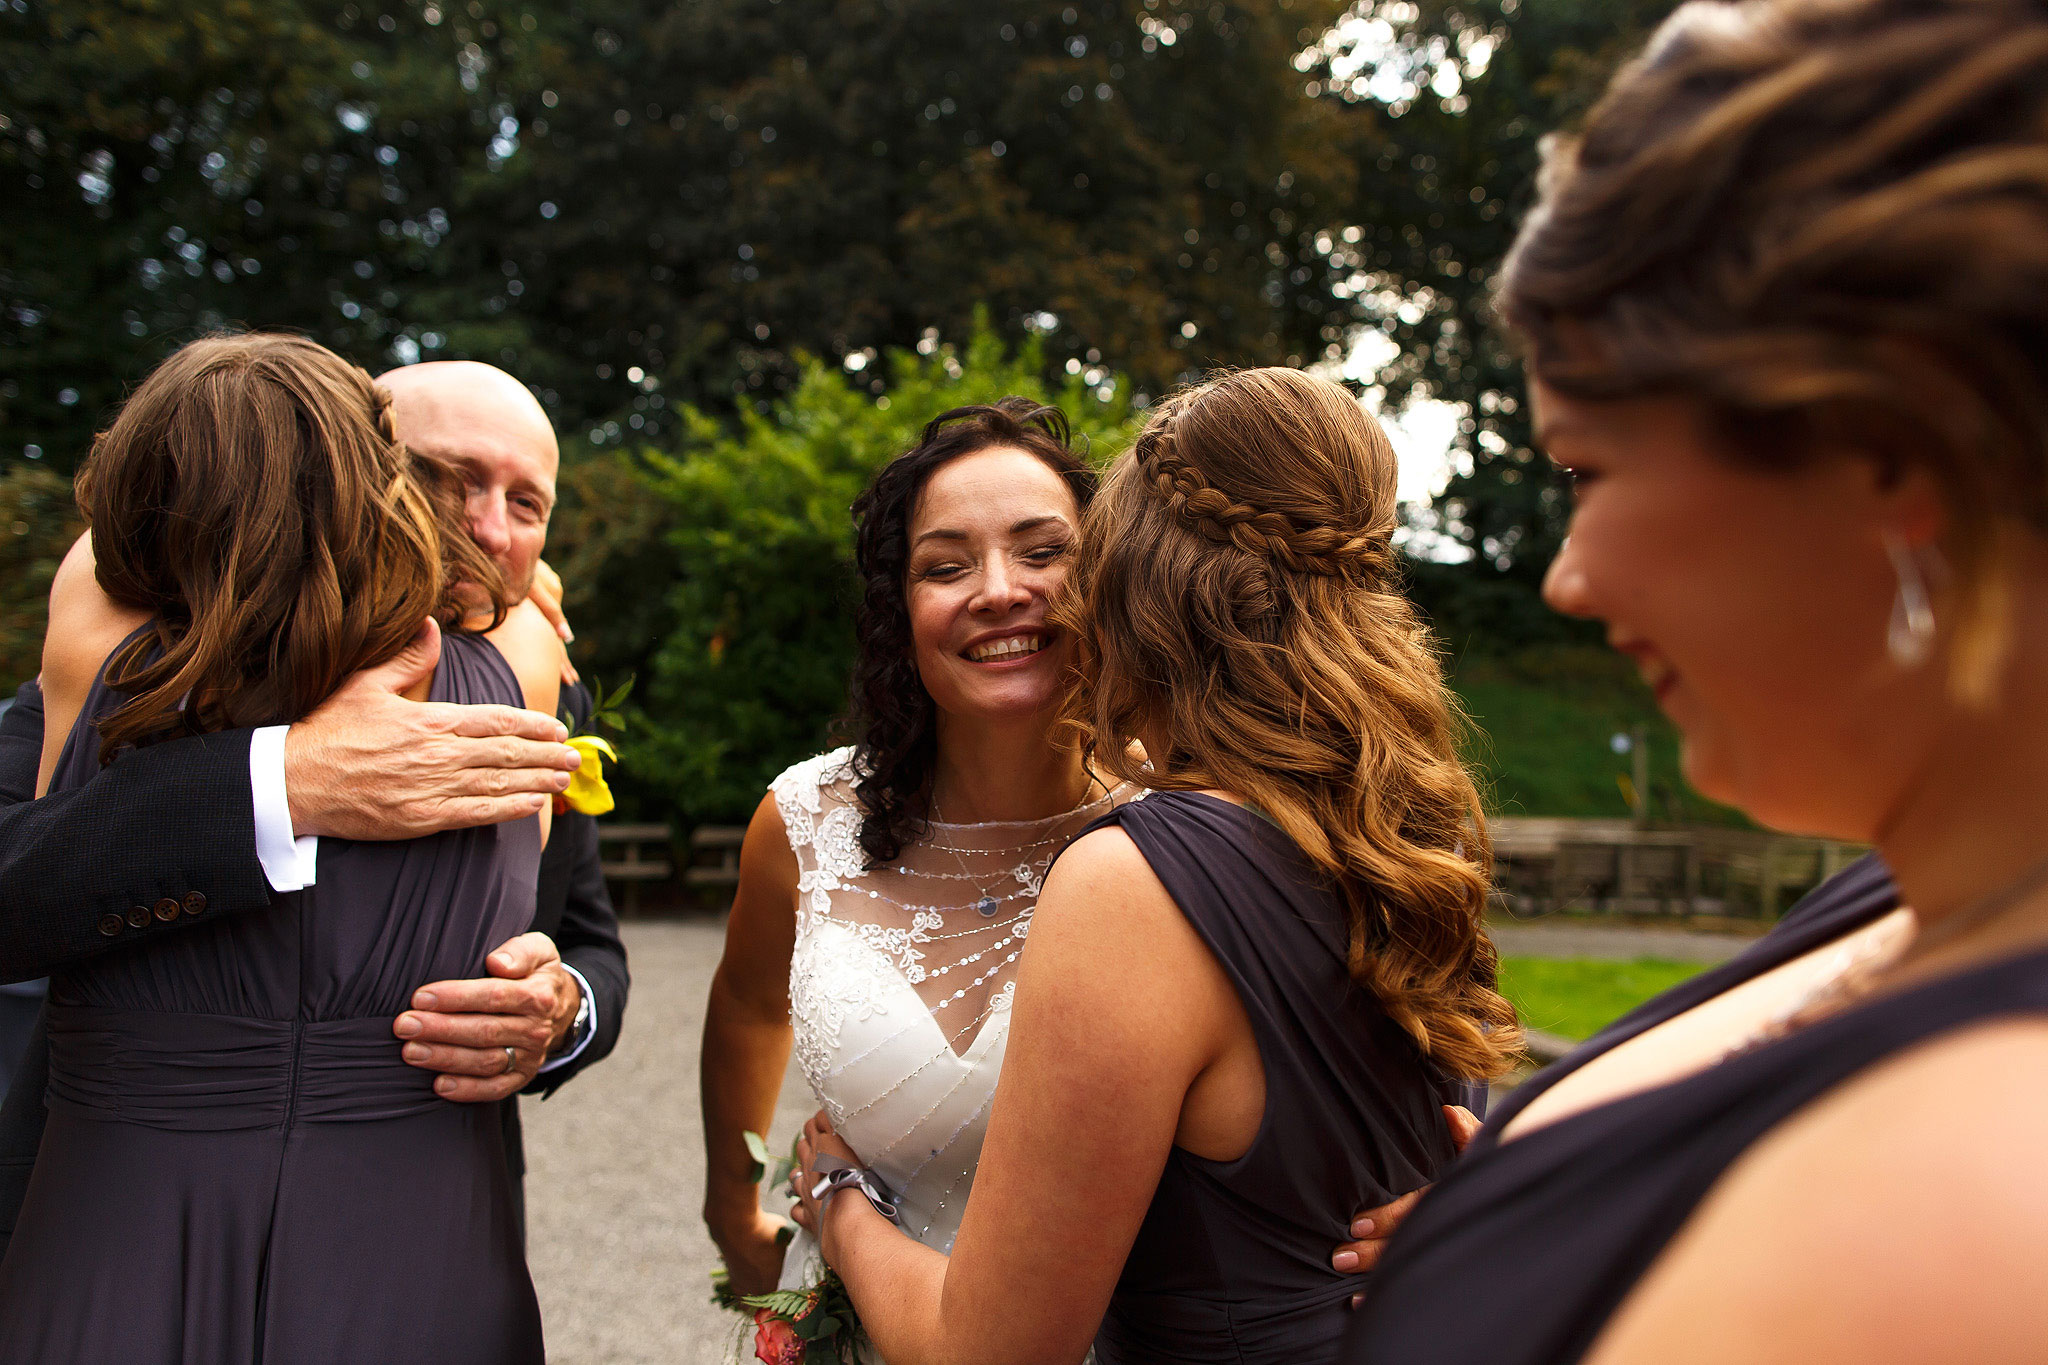 Bride and groom hugging bridal party during drinks reception outdoors | Hargate Hall Wedding Photography